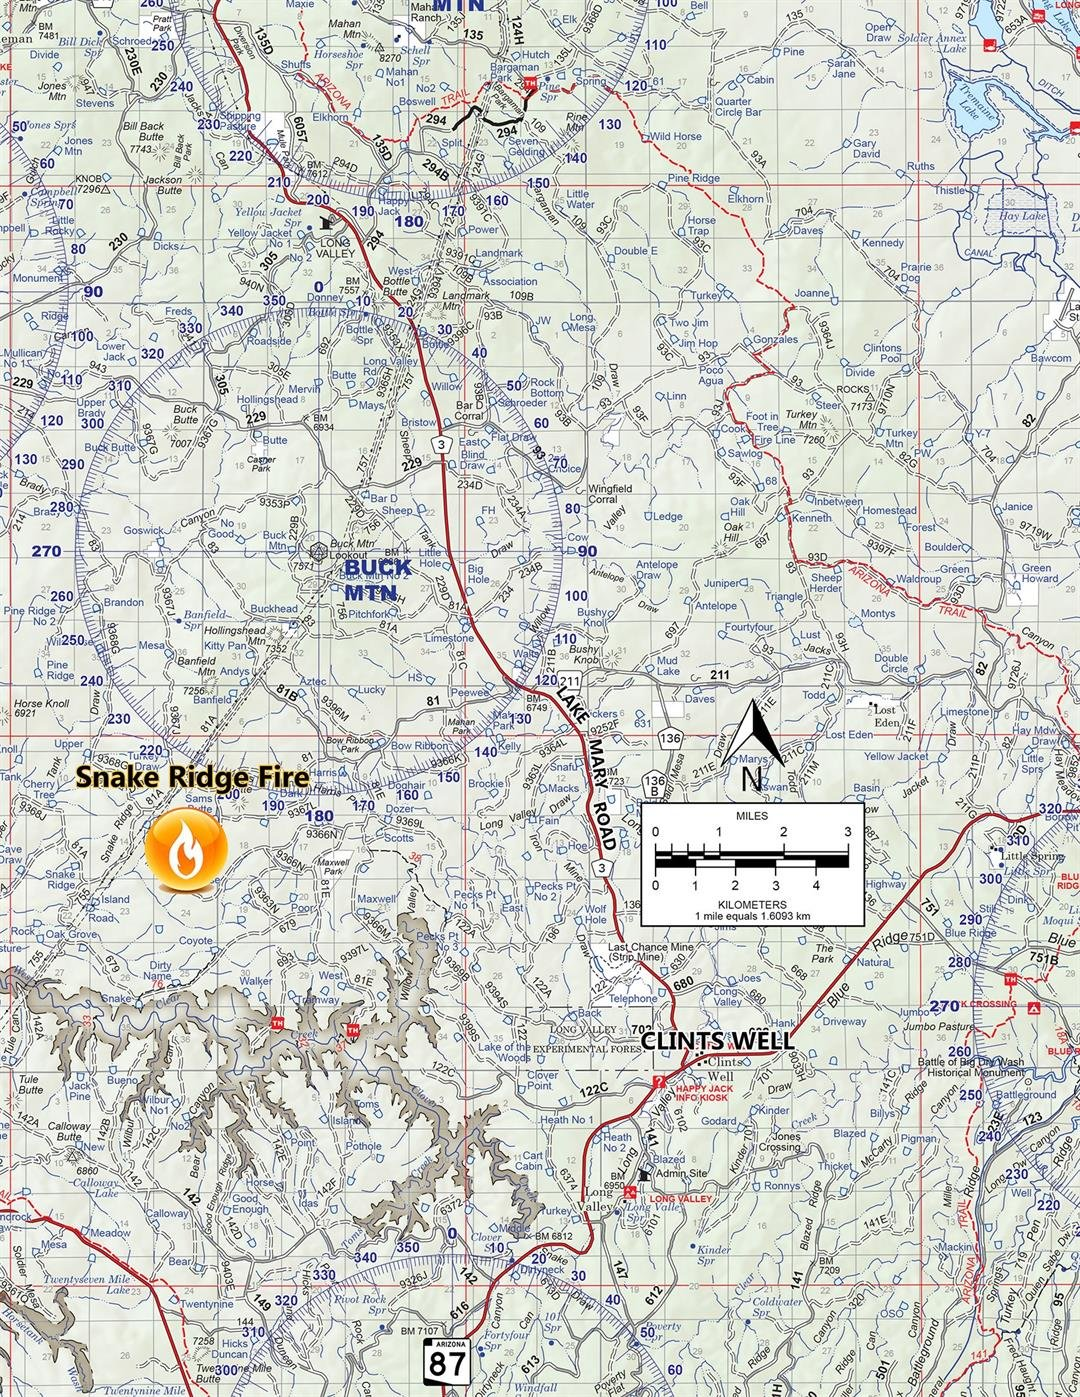 A map of the location of the Snake Ridge Fire. (Source: Coconino National Forest Service)